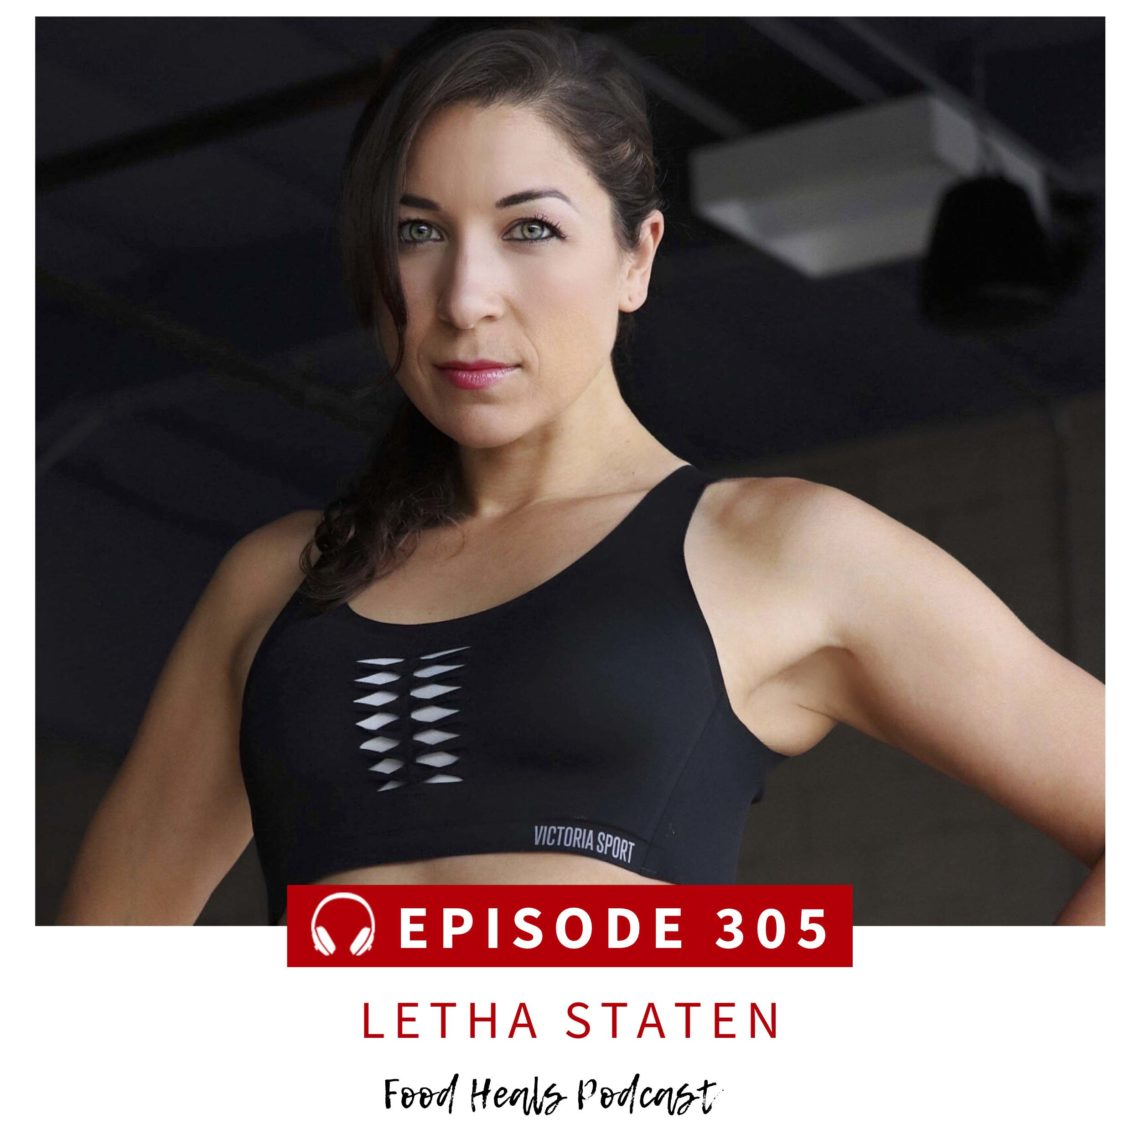 Overcoming Abuse and Childhood Trauma with Love, Grace, and Greens with Letha Staten